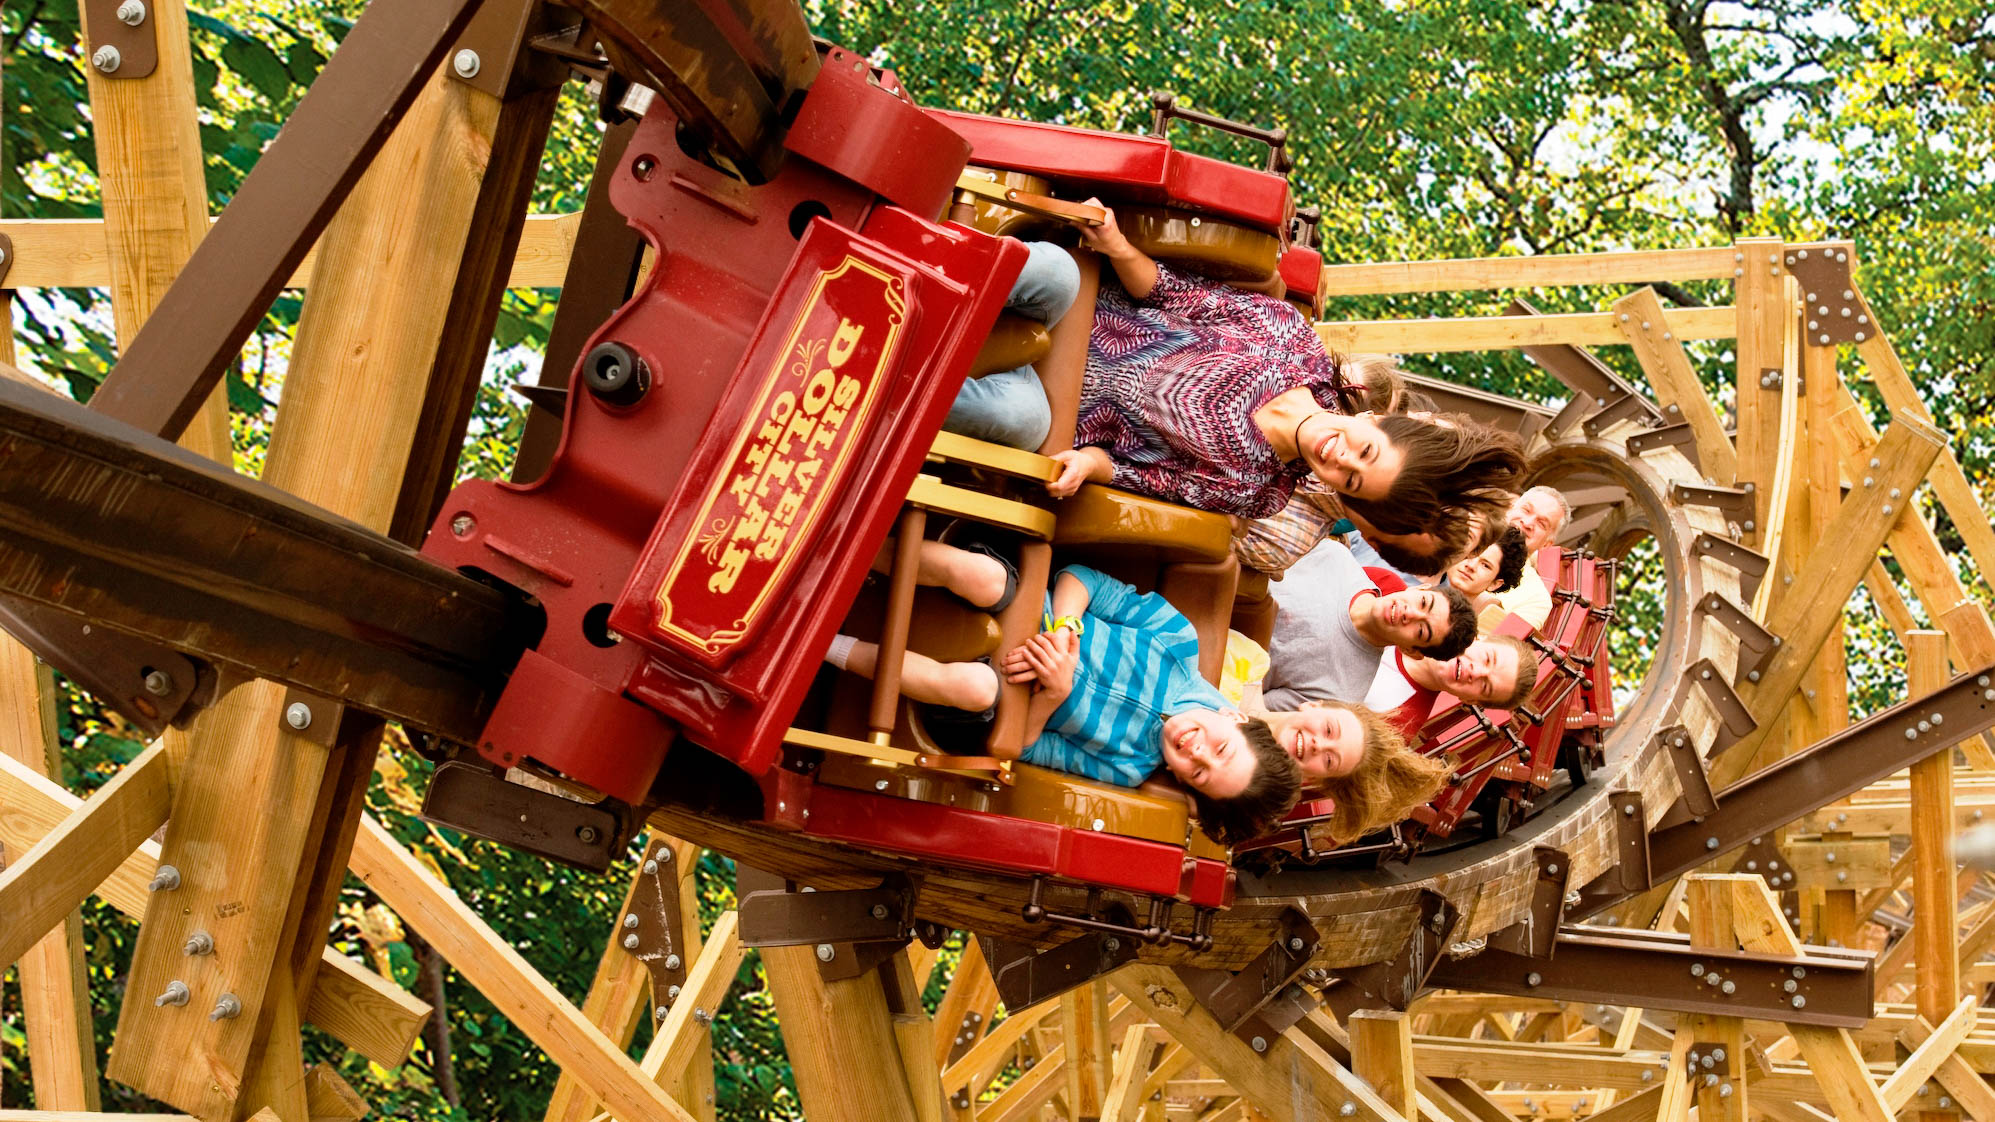 130319 SDC Outlaw Run barrel roll - Silver Dollar City one of Top 5 Amusement Parks in USA